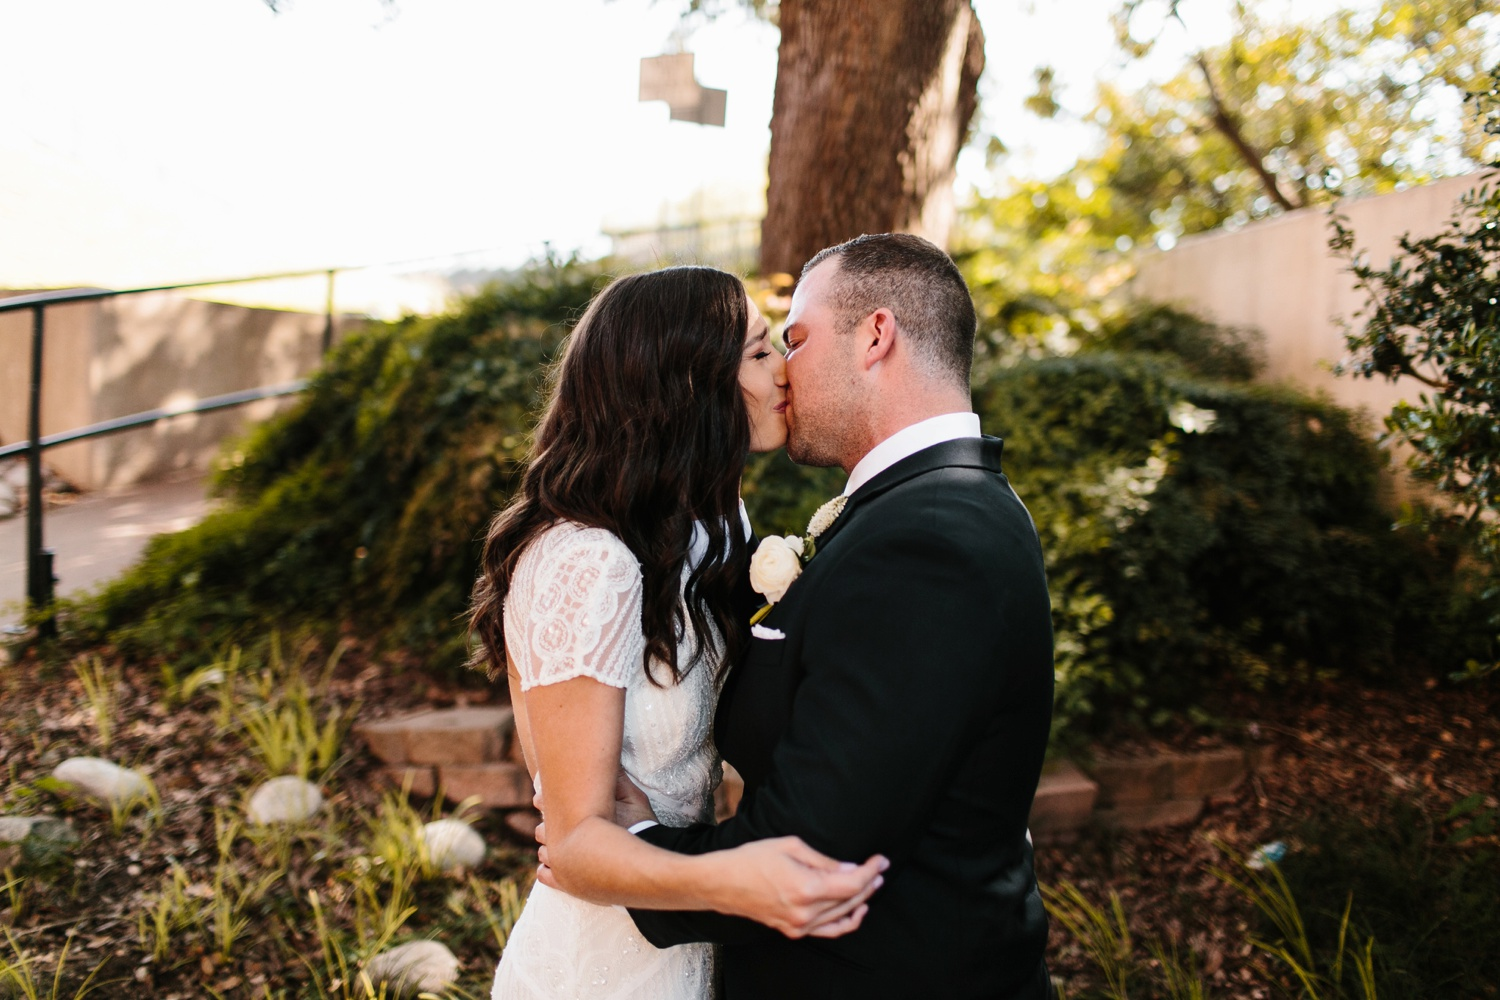 Kadee + Tyler | a raw, emotional wedding at the Filter Building on White Rock Lake in Dallas, TX by North Texas Wedding Photographer, Rachel Meagan Photography 062